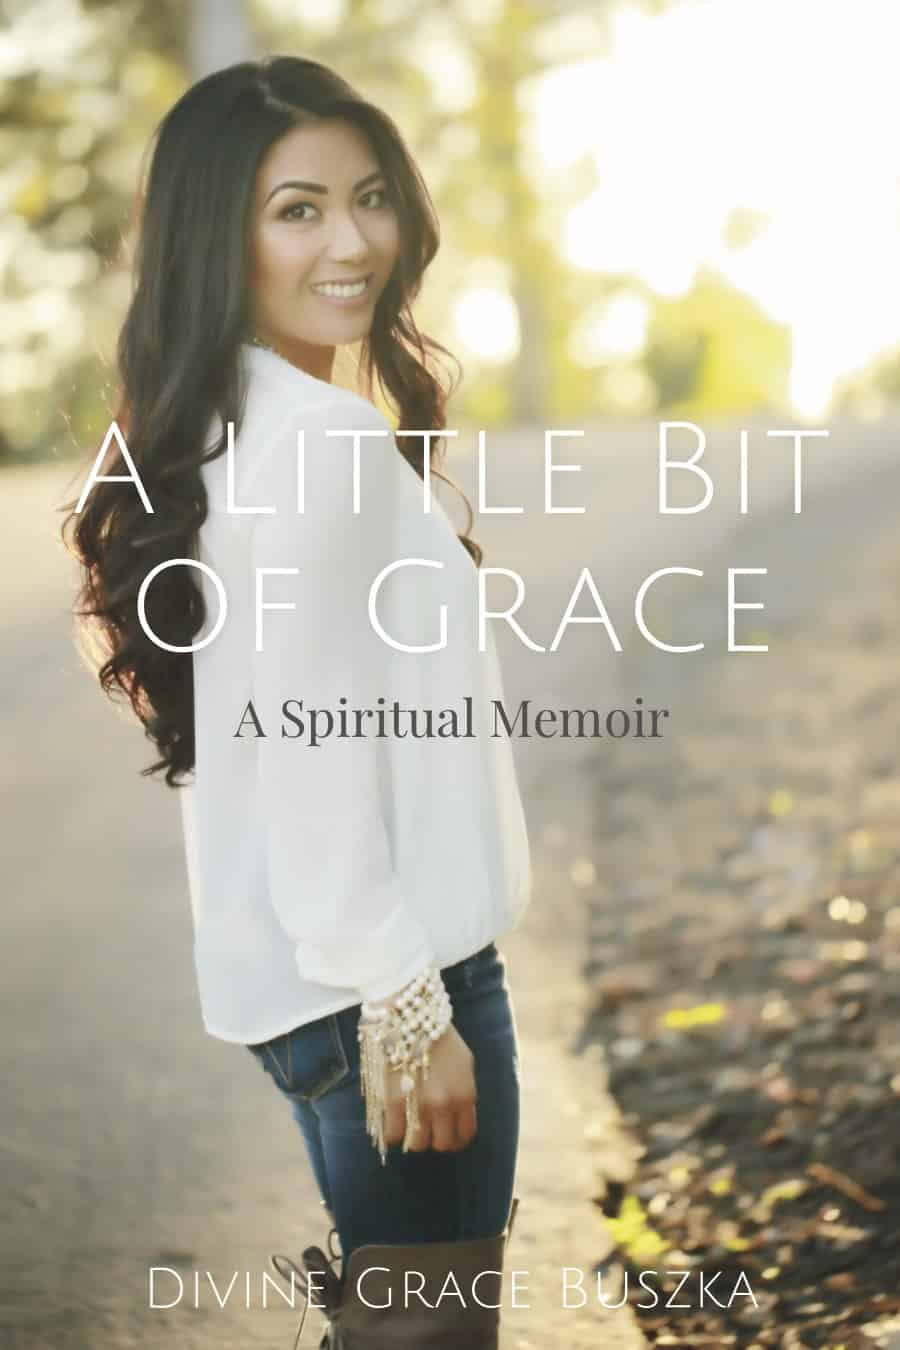 Divine Grace Buszka author, A Little Bit Of Grace new book